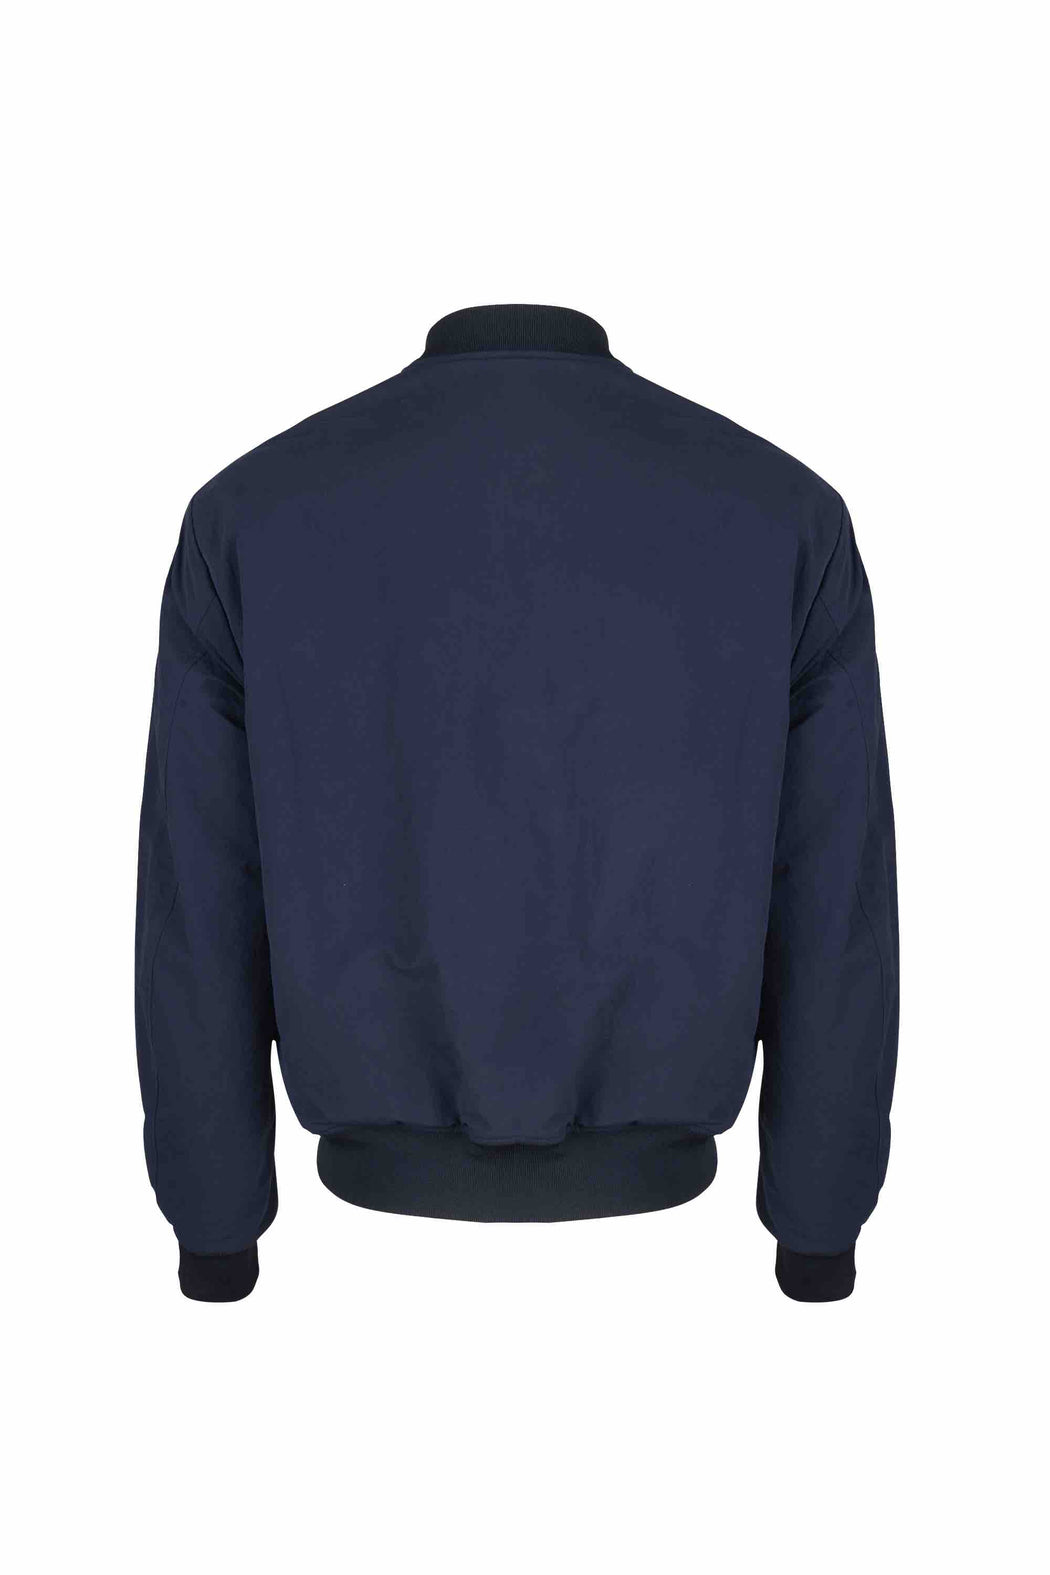 Back view of Men Reversible Wool Patch Bomber in Navy/Black (Navy Side)